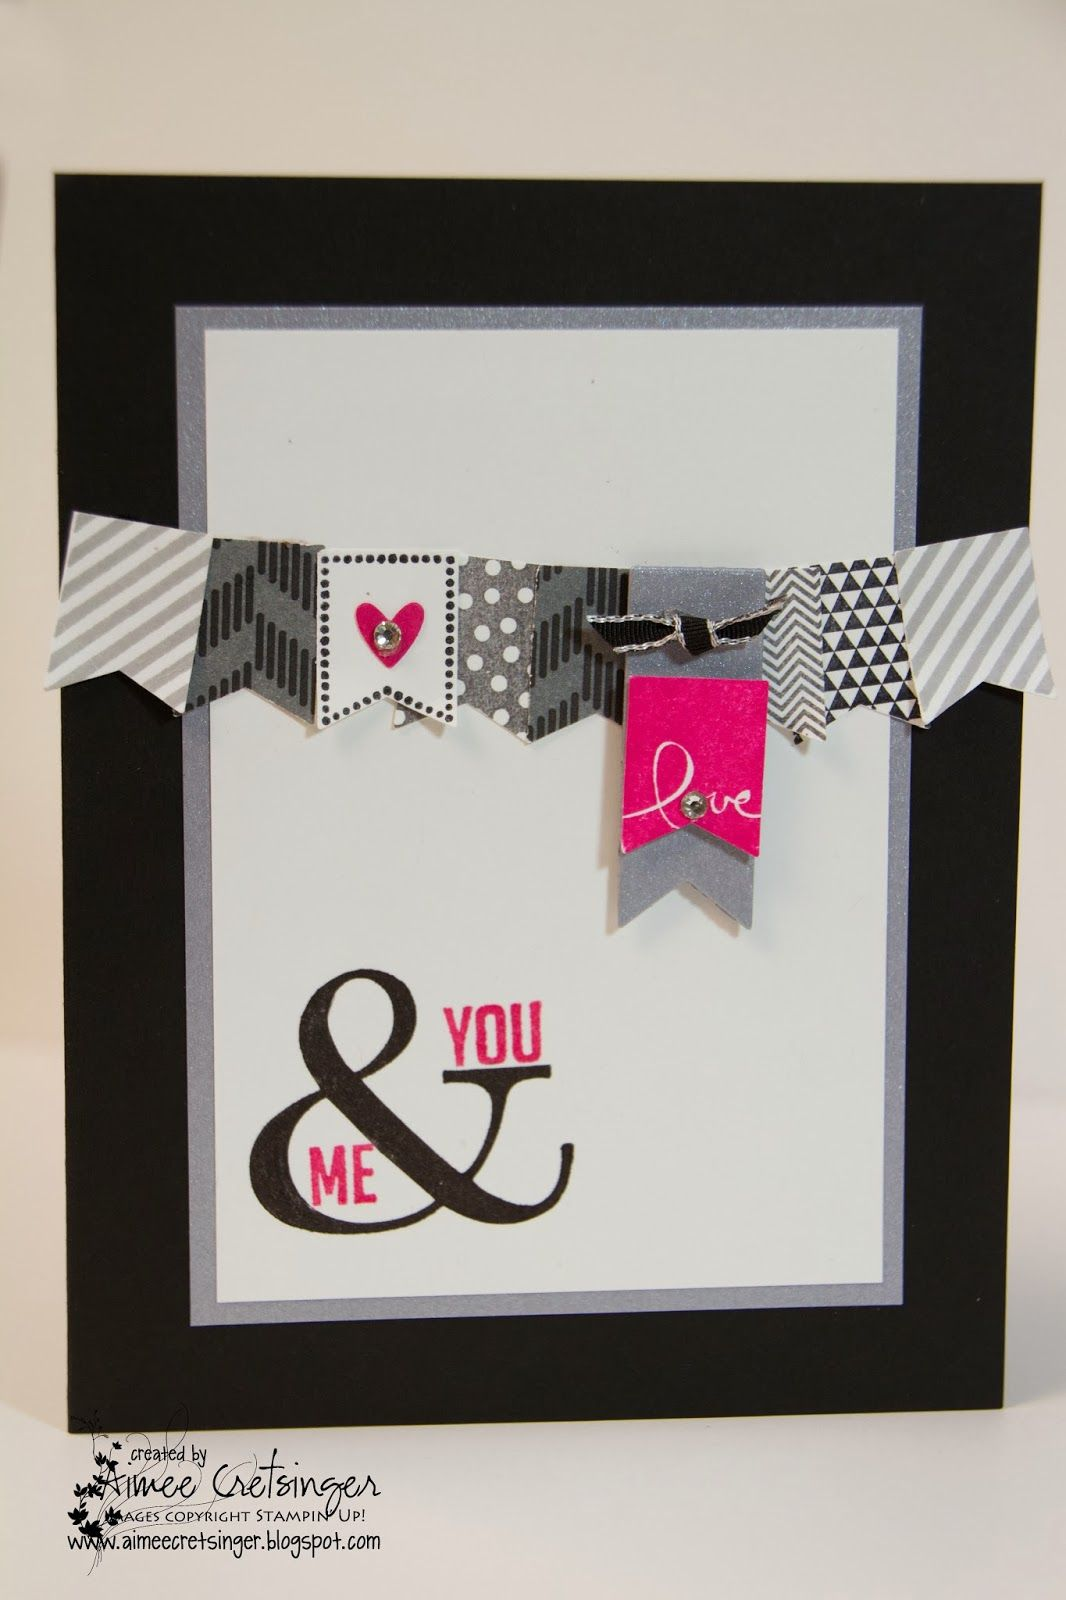 stampin up valentine by aimees creations new - Stampin Up Valentine Card Ideas